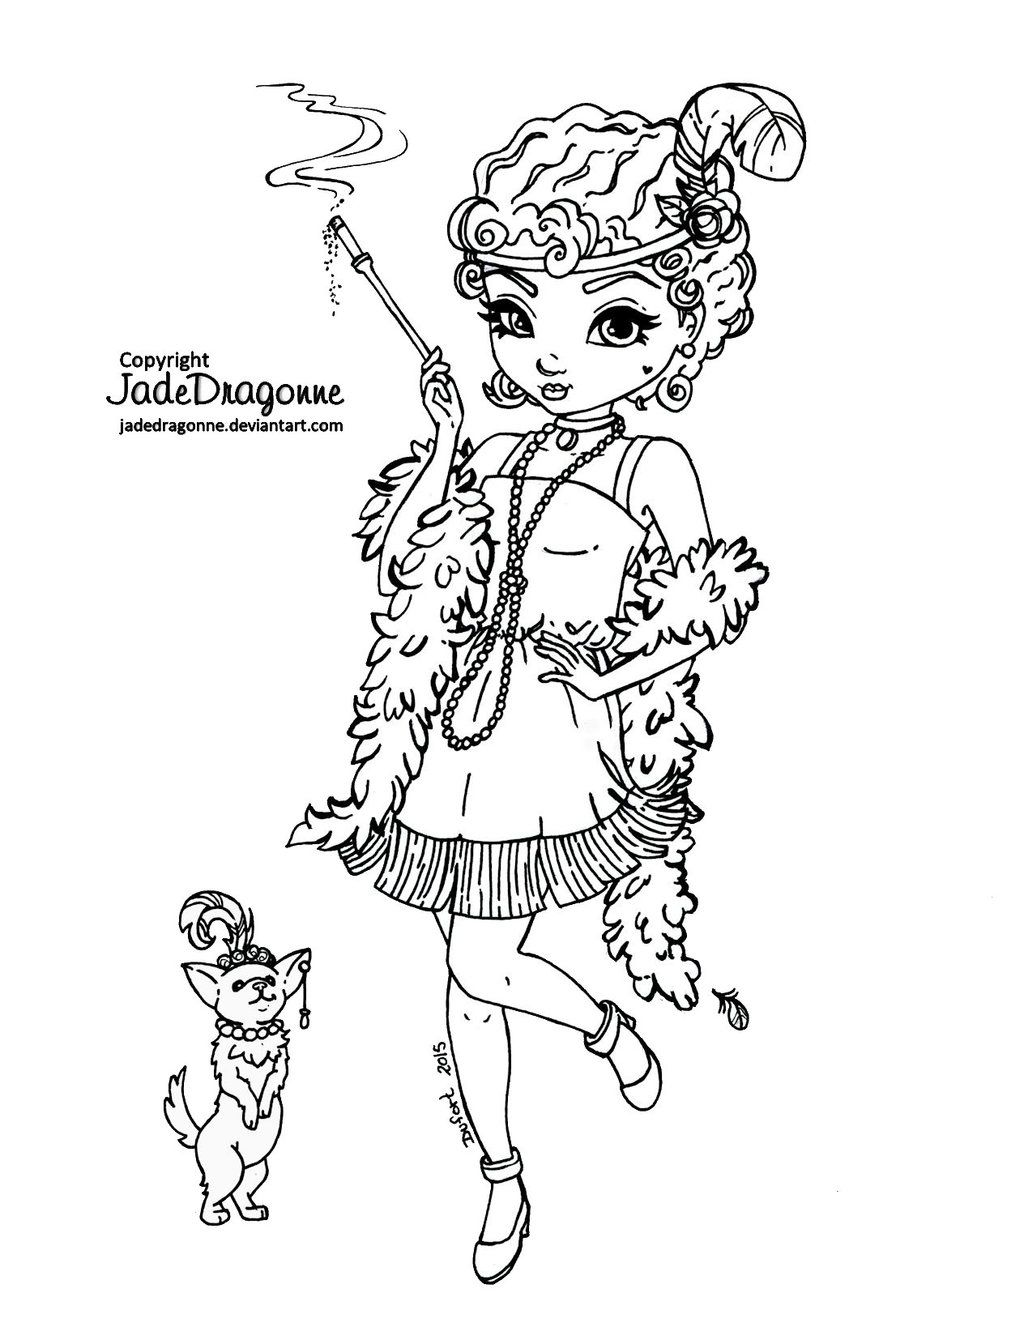 1920s coloring pages for kids | 1920's flapper - Lineart by JadeDragonne.deviantart.com on ...